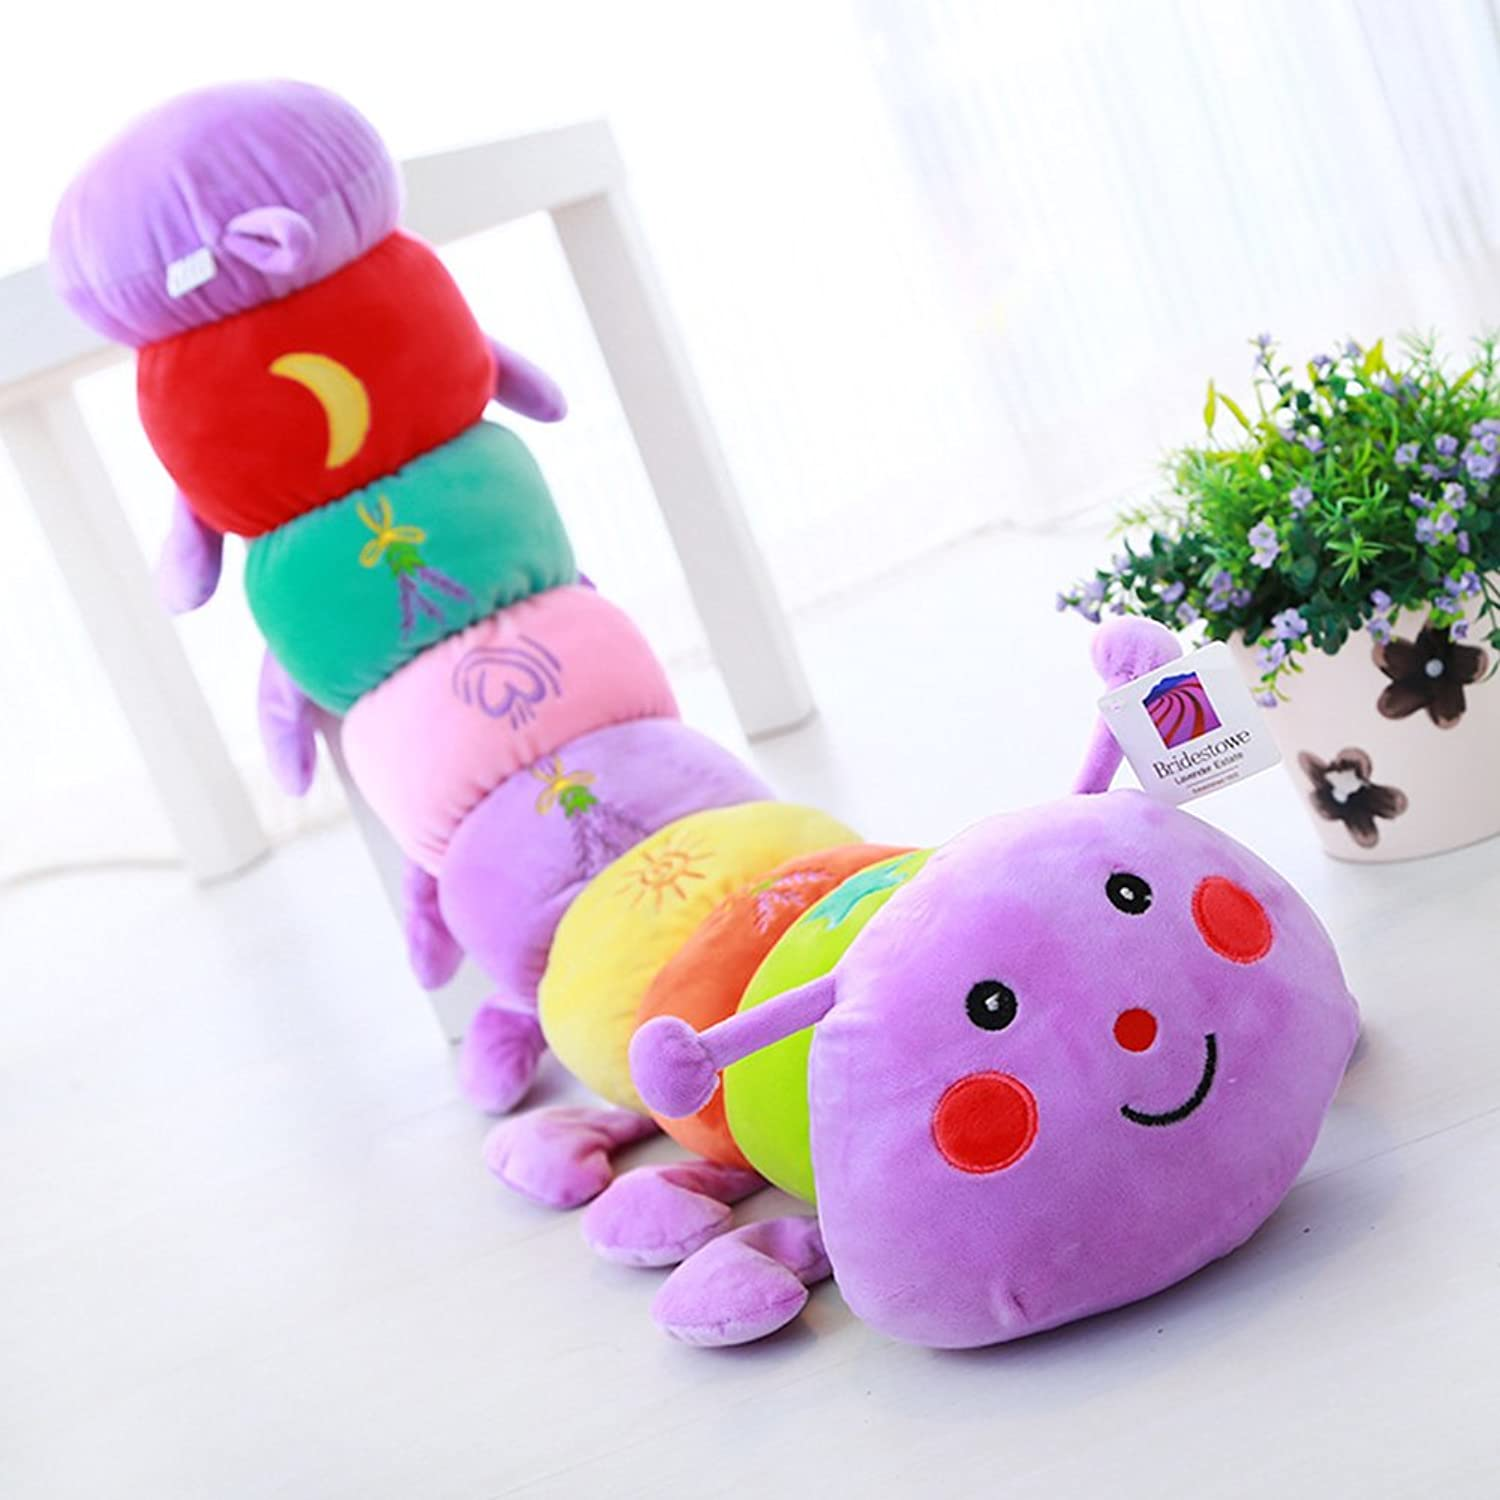 [Trendy Comfy] Creative Cute Lavender colorful Caterpillar Short Plush Doll Pillow (Purple) 46.8